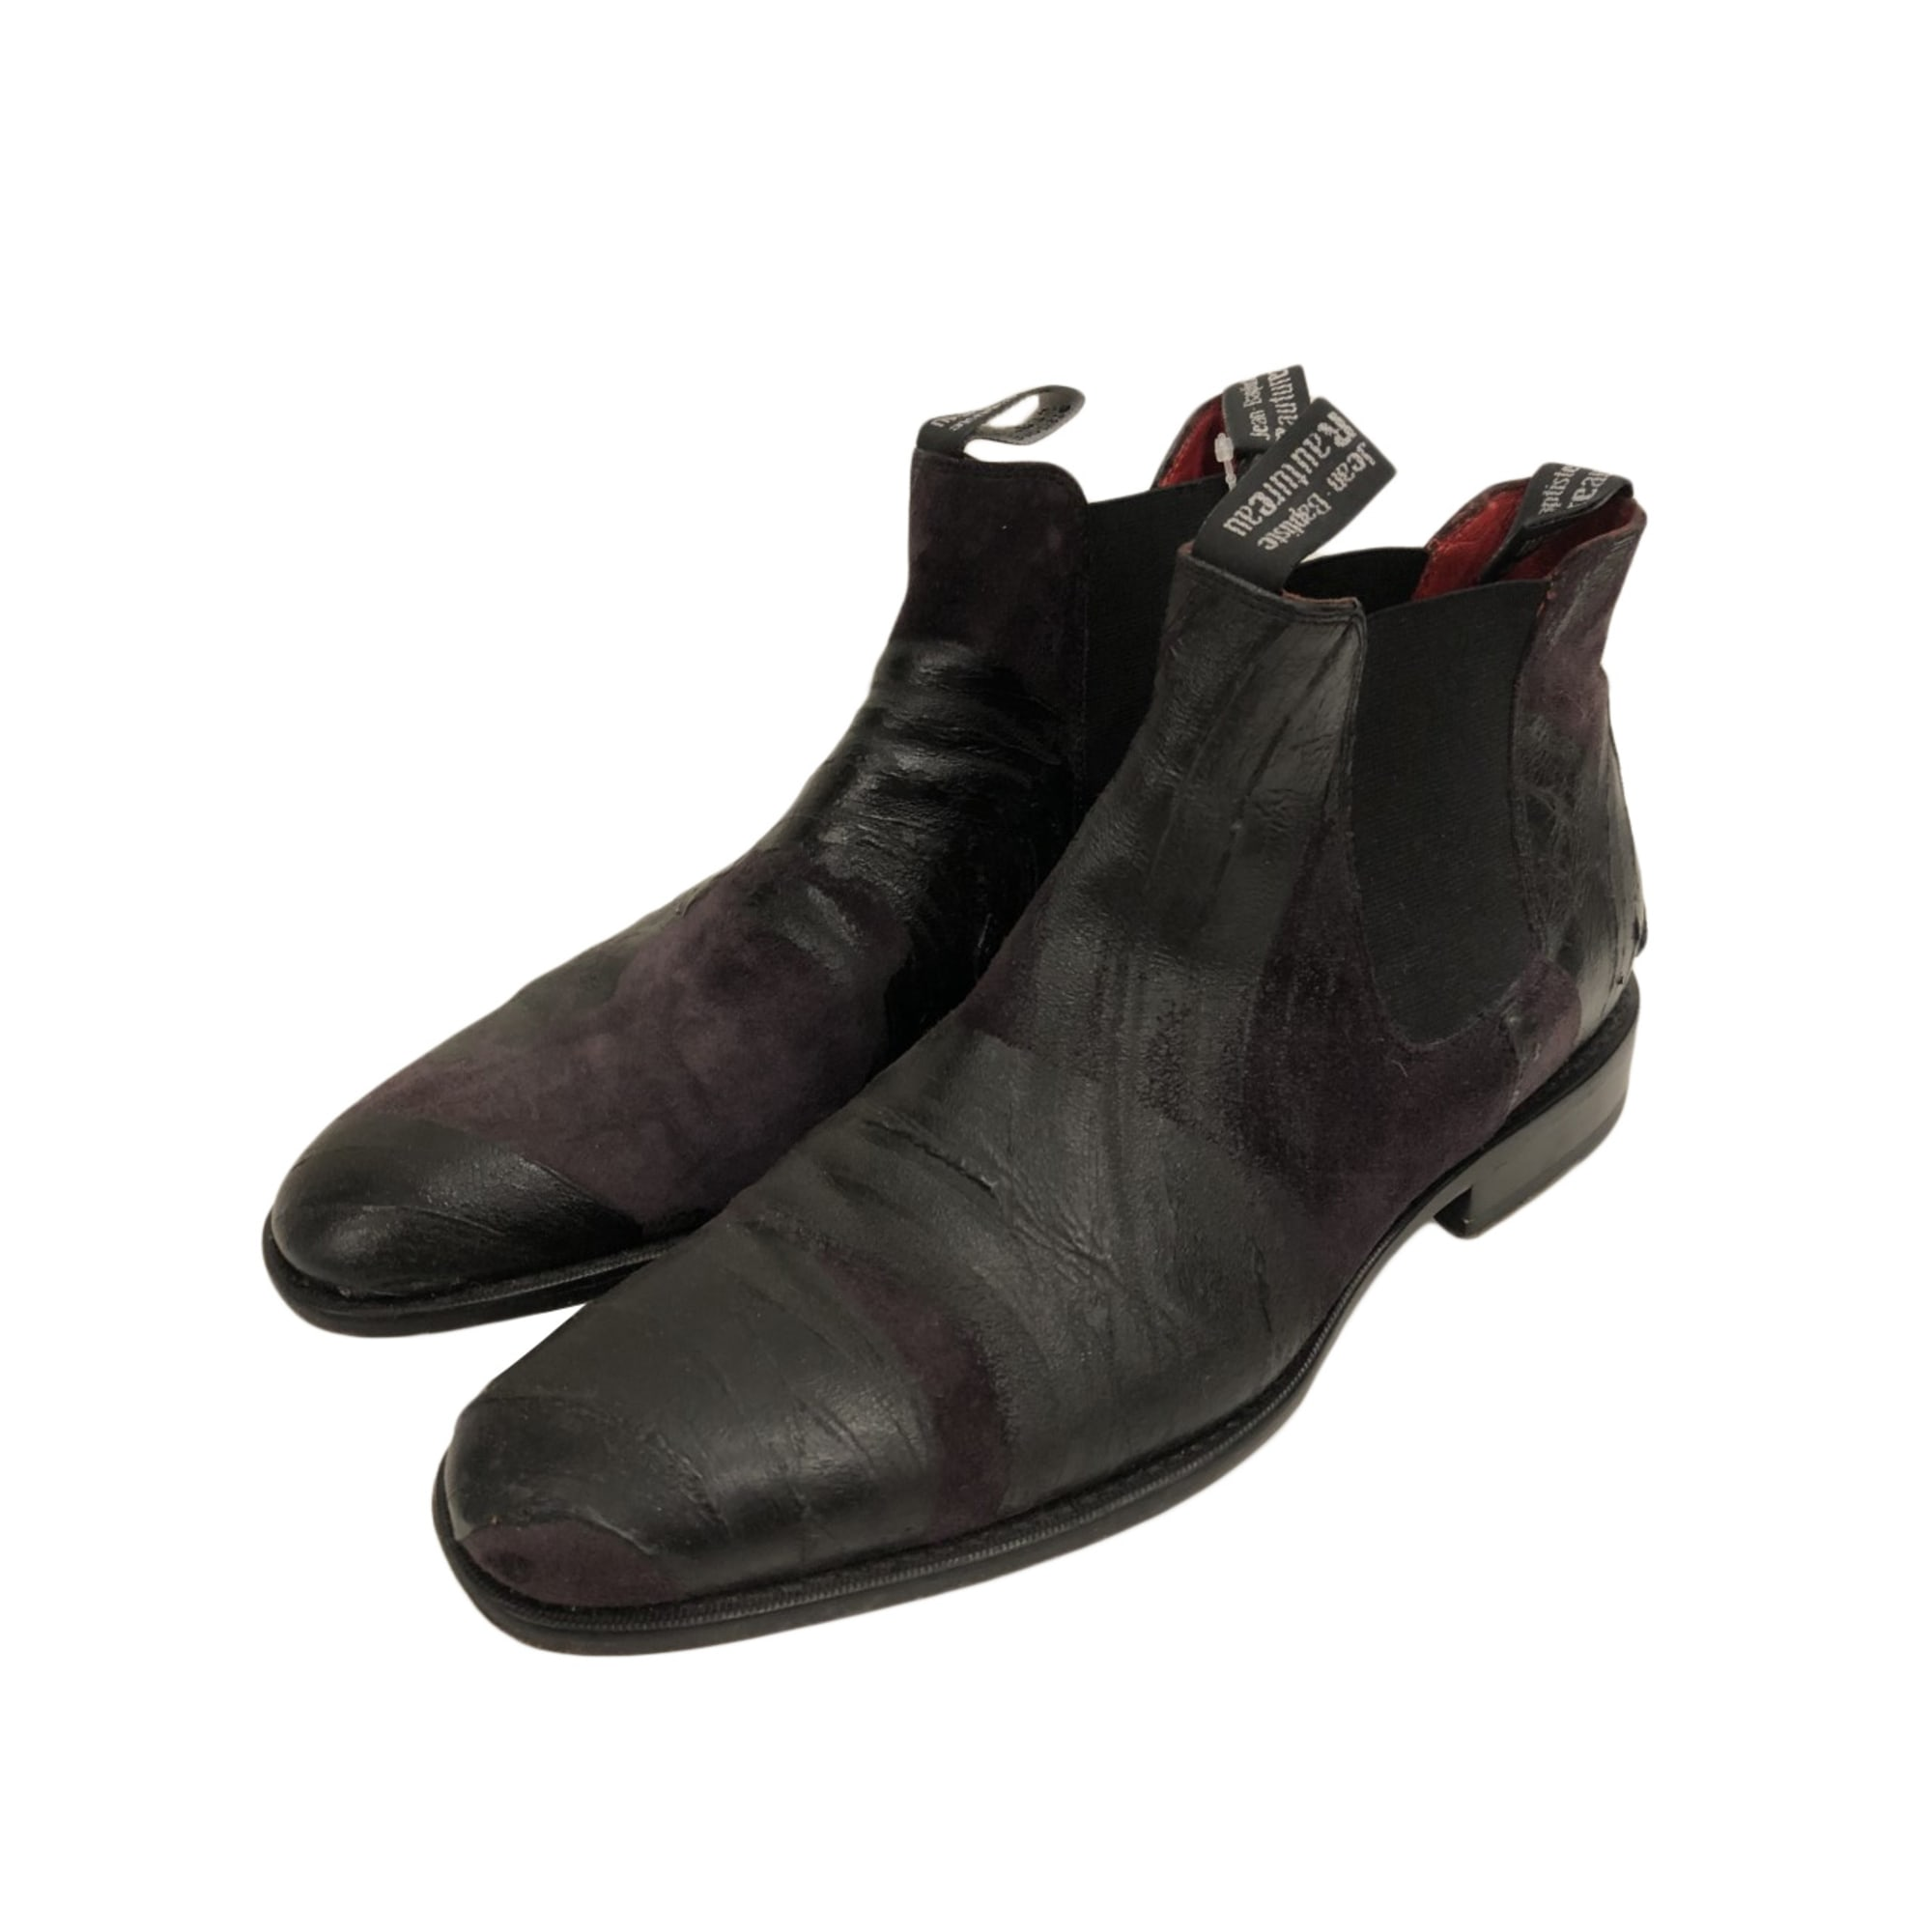 Bottines JEAN-BAPTISTE RAUTUREAU Noir